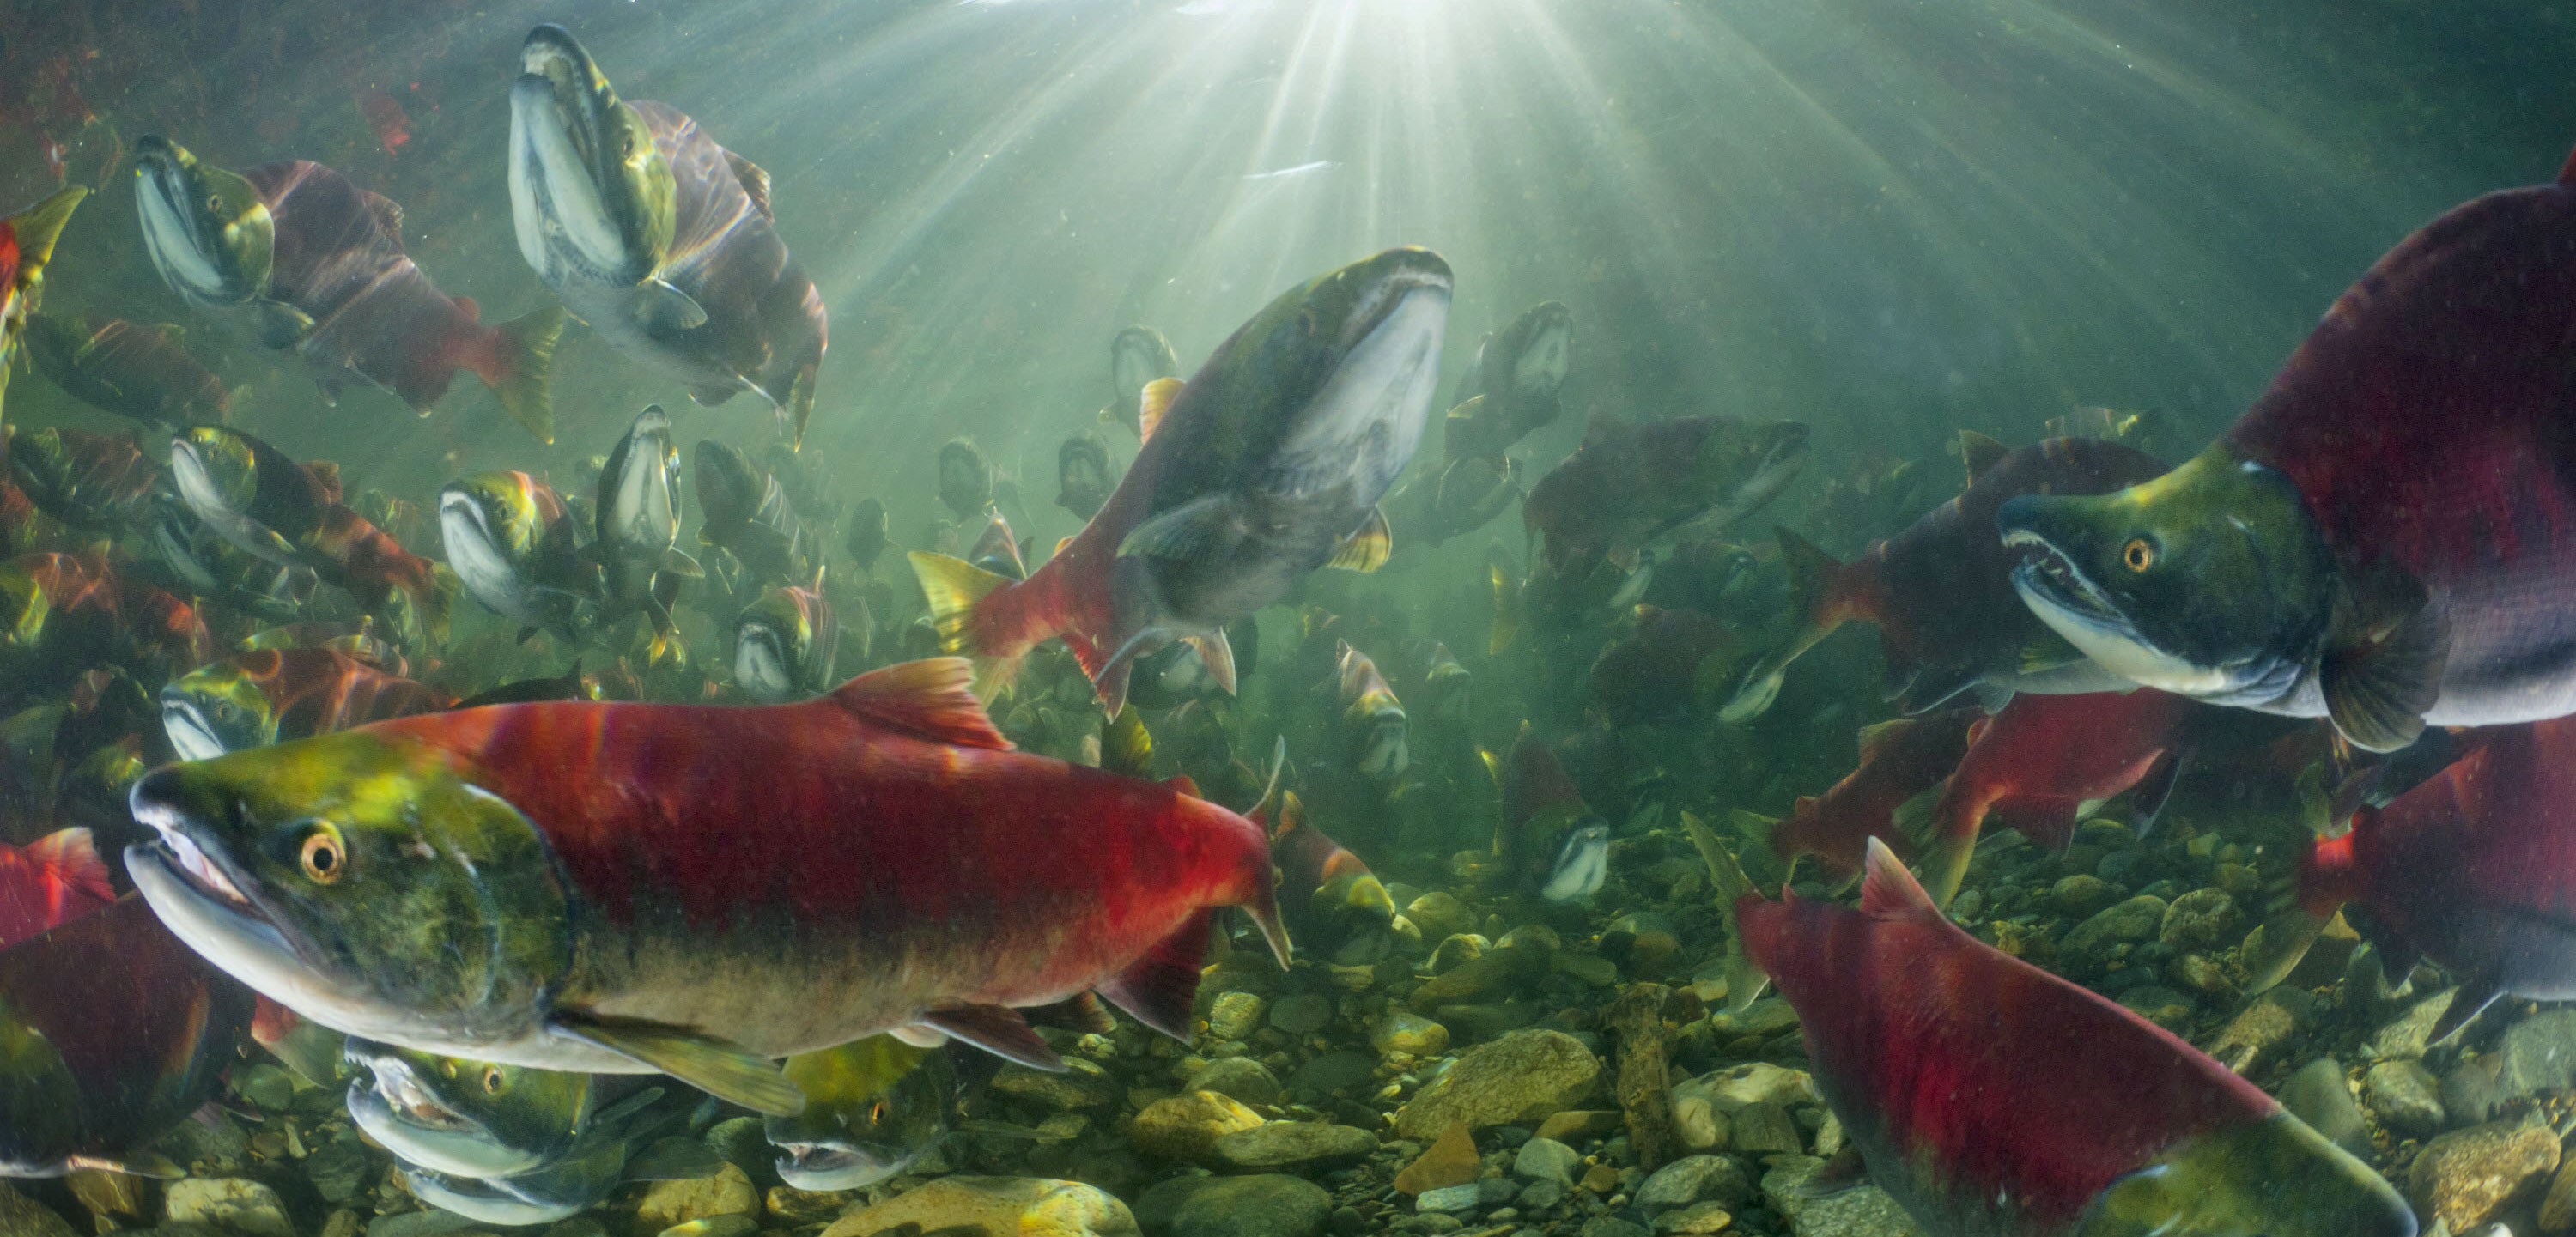 Sockeye Salmon (Oncorhynchus nerka) group swimming